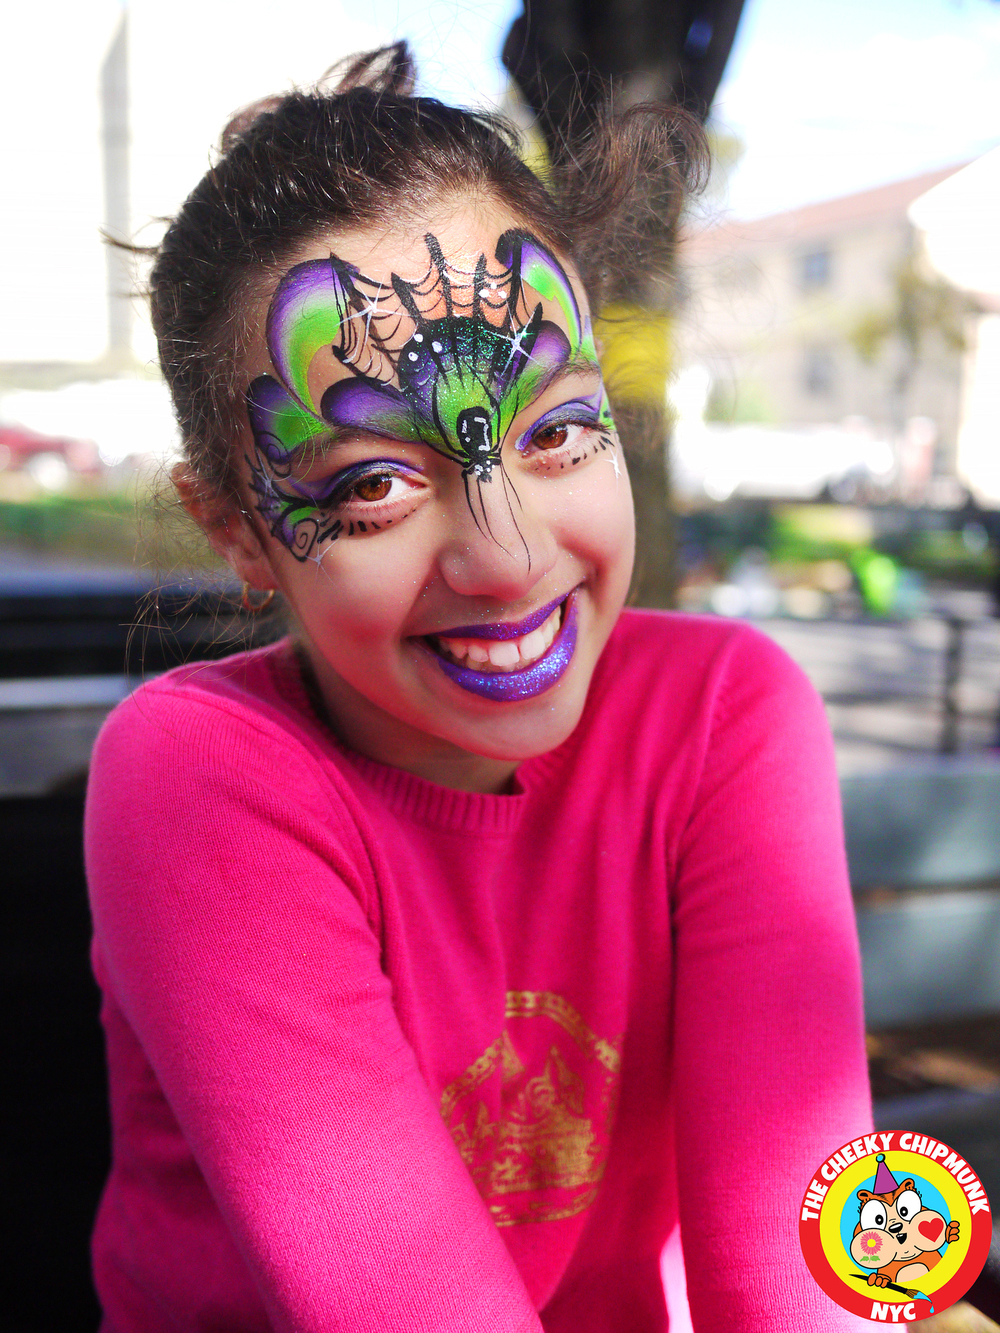 "Spider Queen face painting by Lenore Koppelman aka ""The Cheeky Chipmunk"" in NYC"